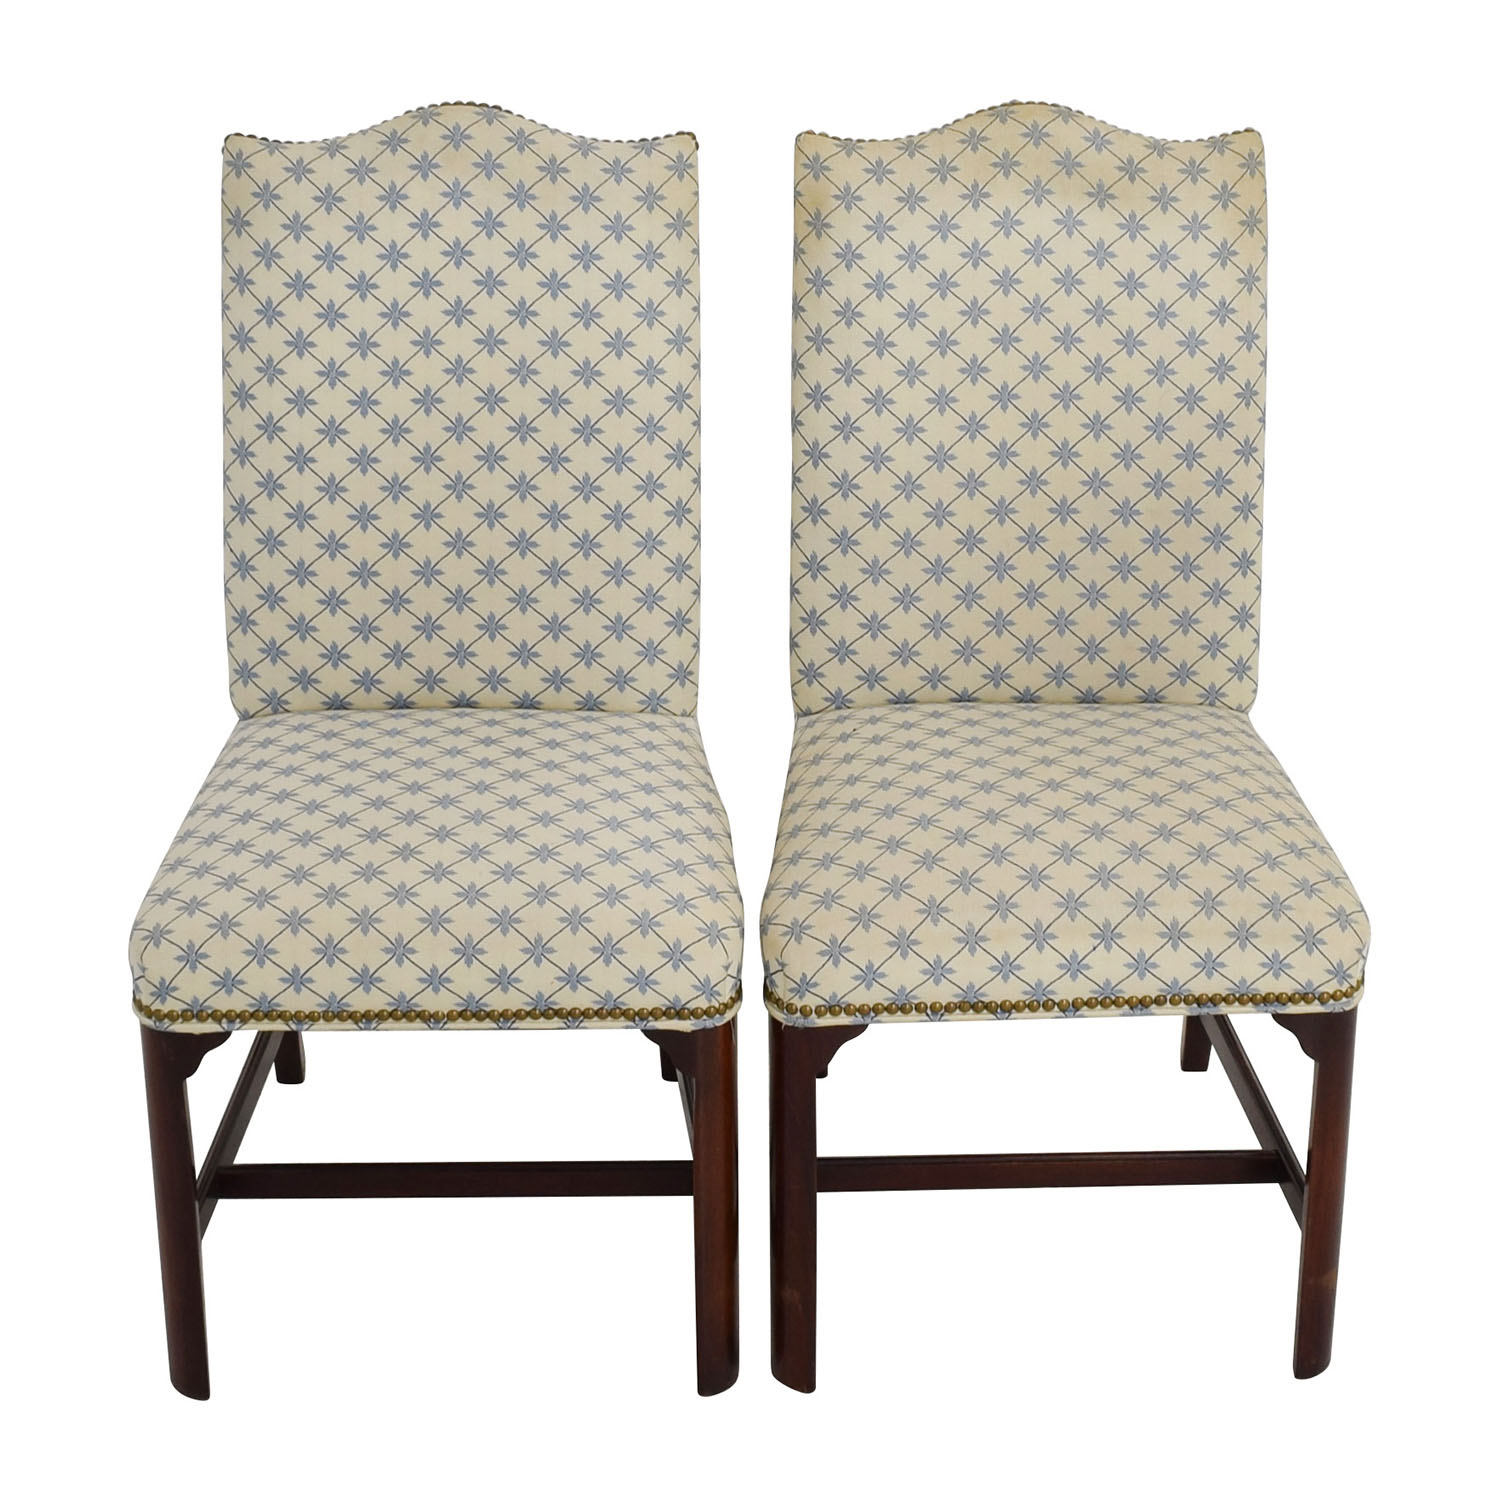 shop Hickory Chair Hickory Chair Bespoke Upholstered Occasional Chairs online